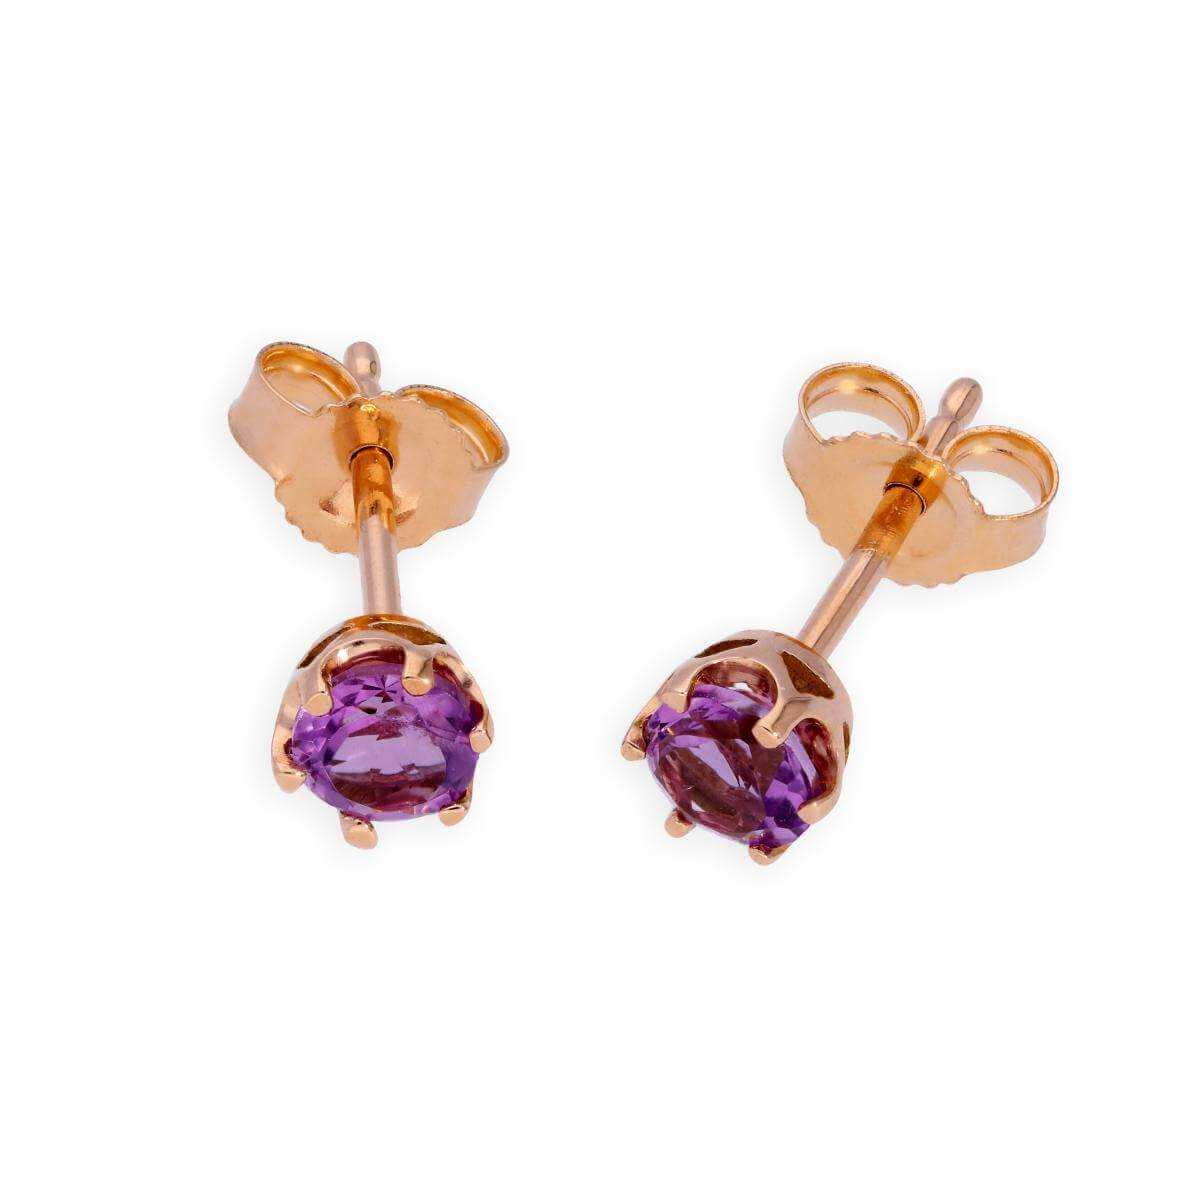 9ct Rose Gold & 5mm Amethyst Genuine Gemstone Stud Earrings